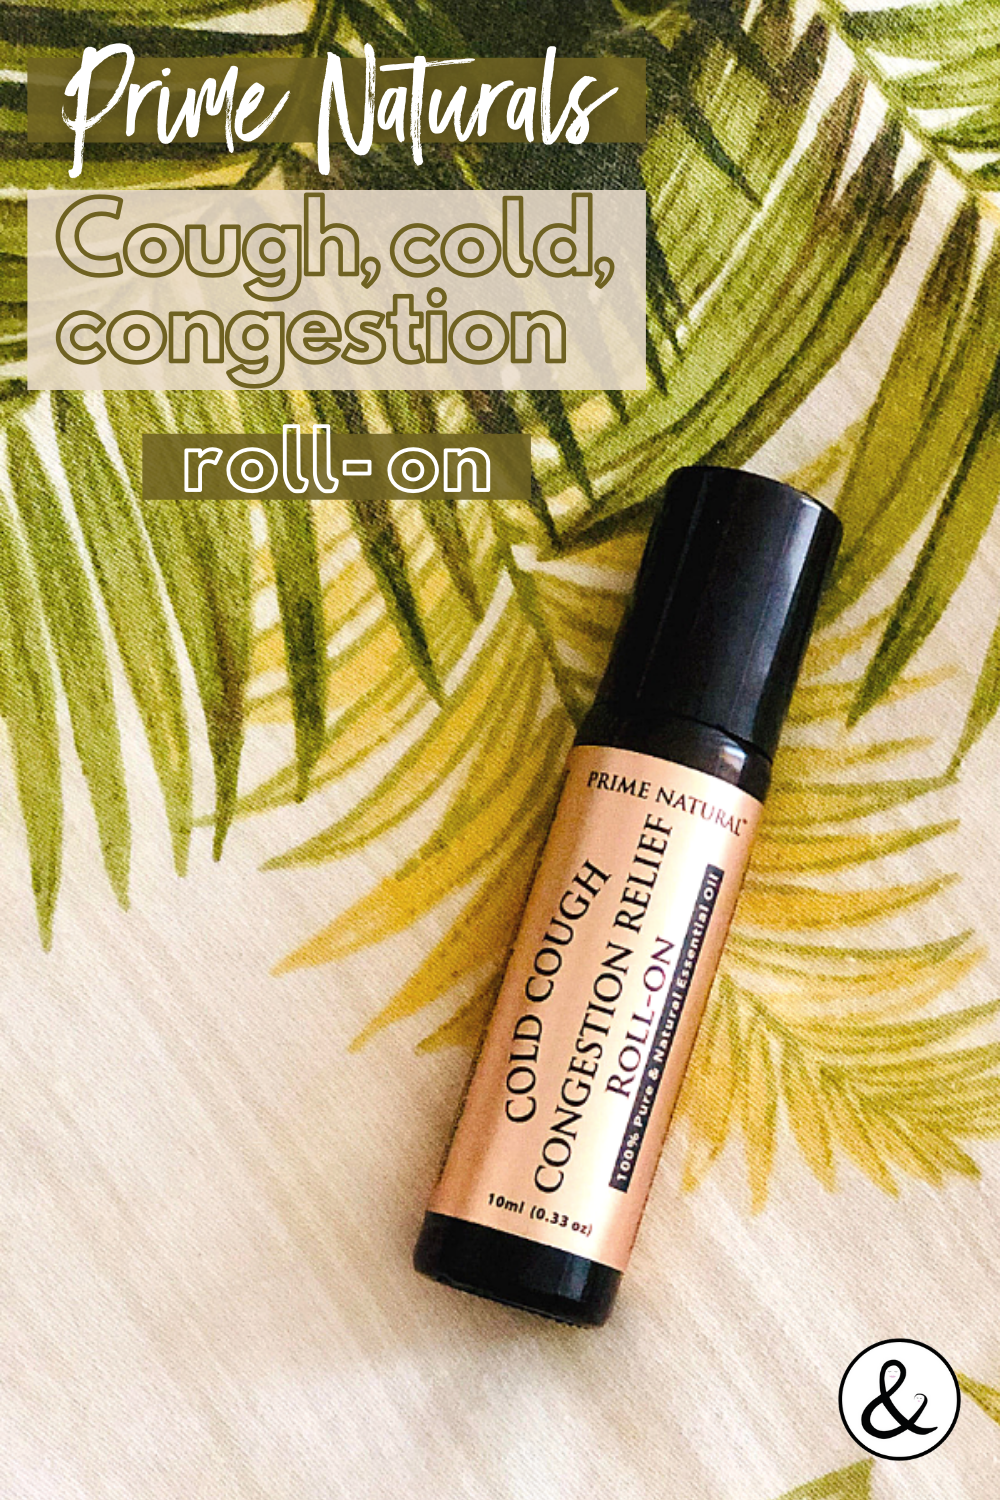 Prime Naturals Cold Cough Congestion Relief Roll-On